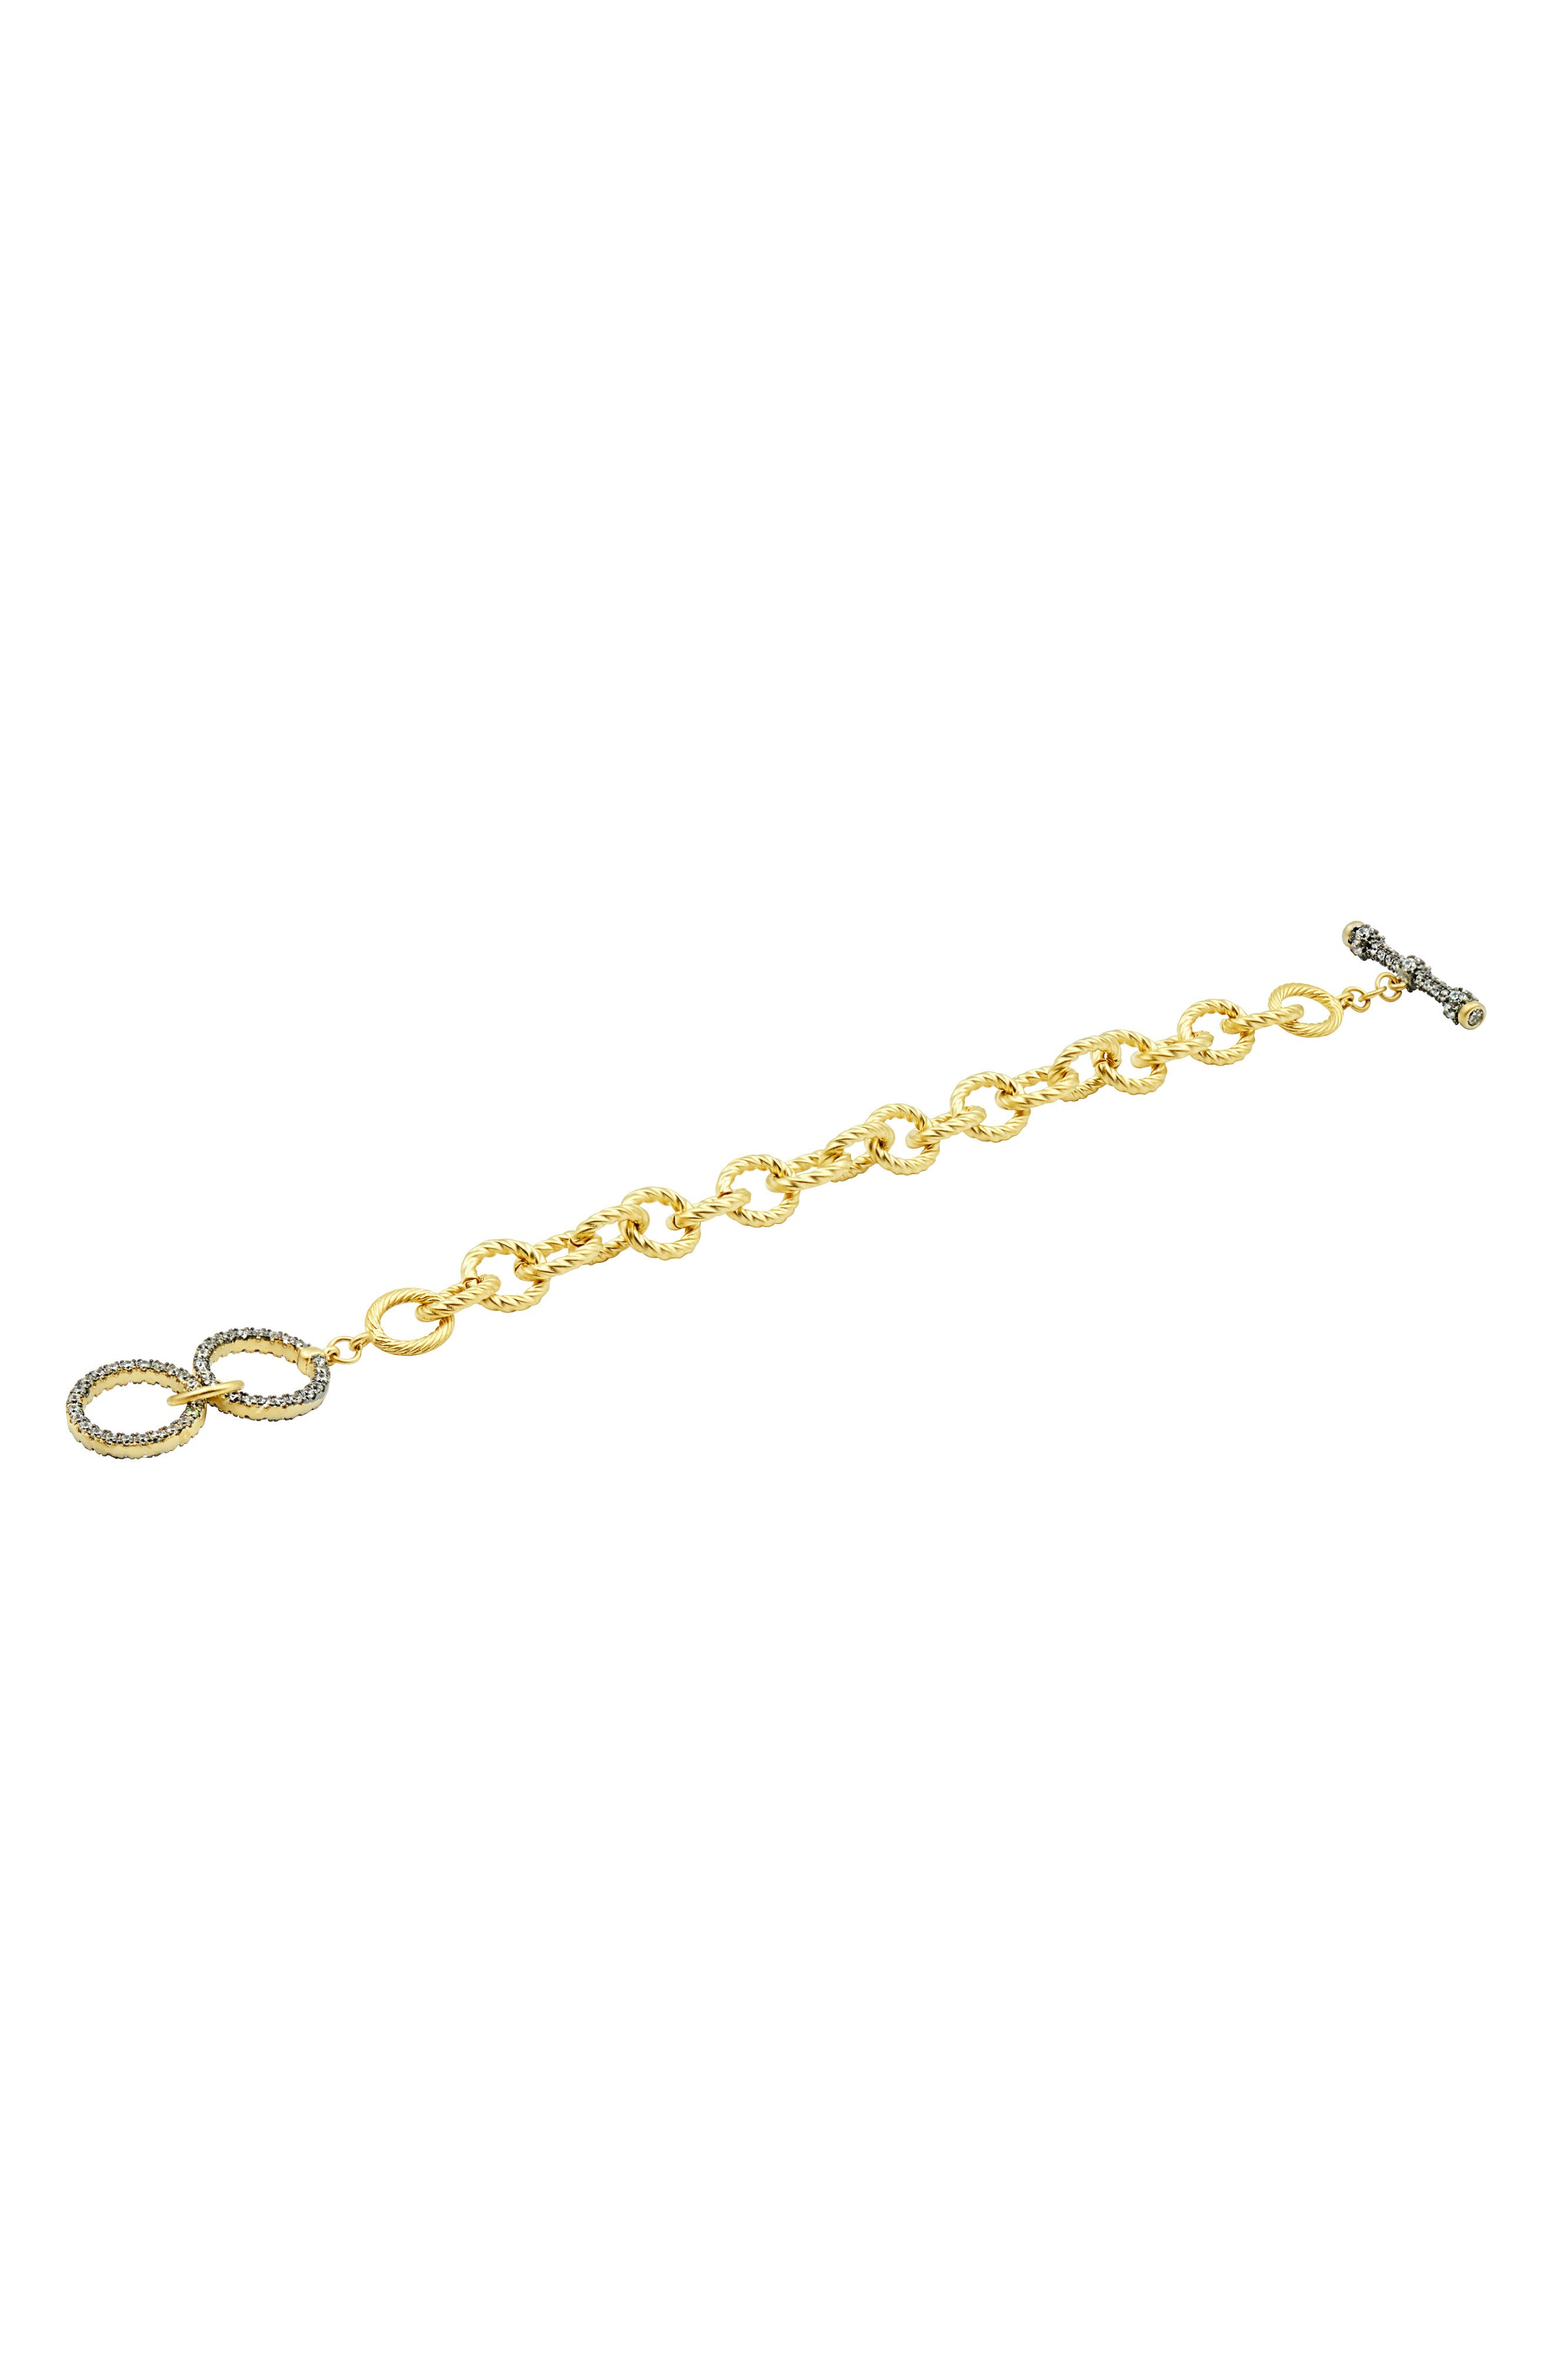 Pave Toggle Chain Link Bracelet,                             Main thumbnail 1, color,                             GOLD